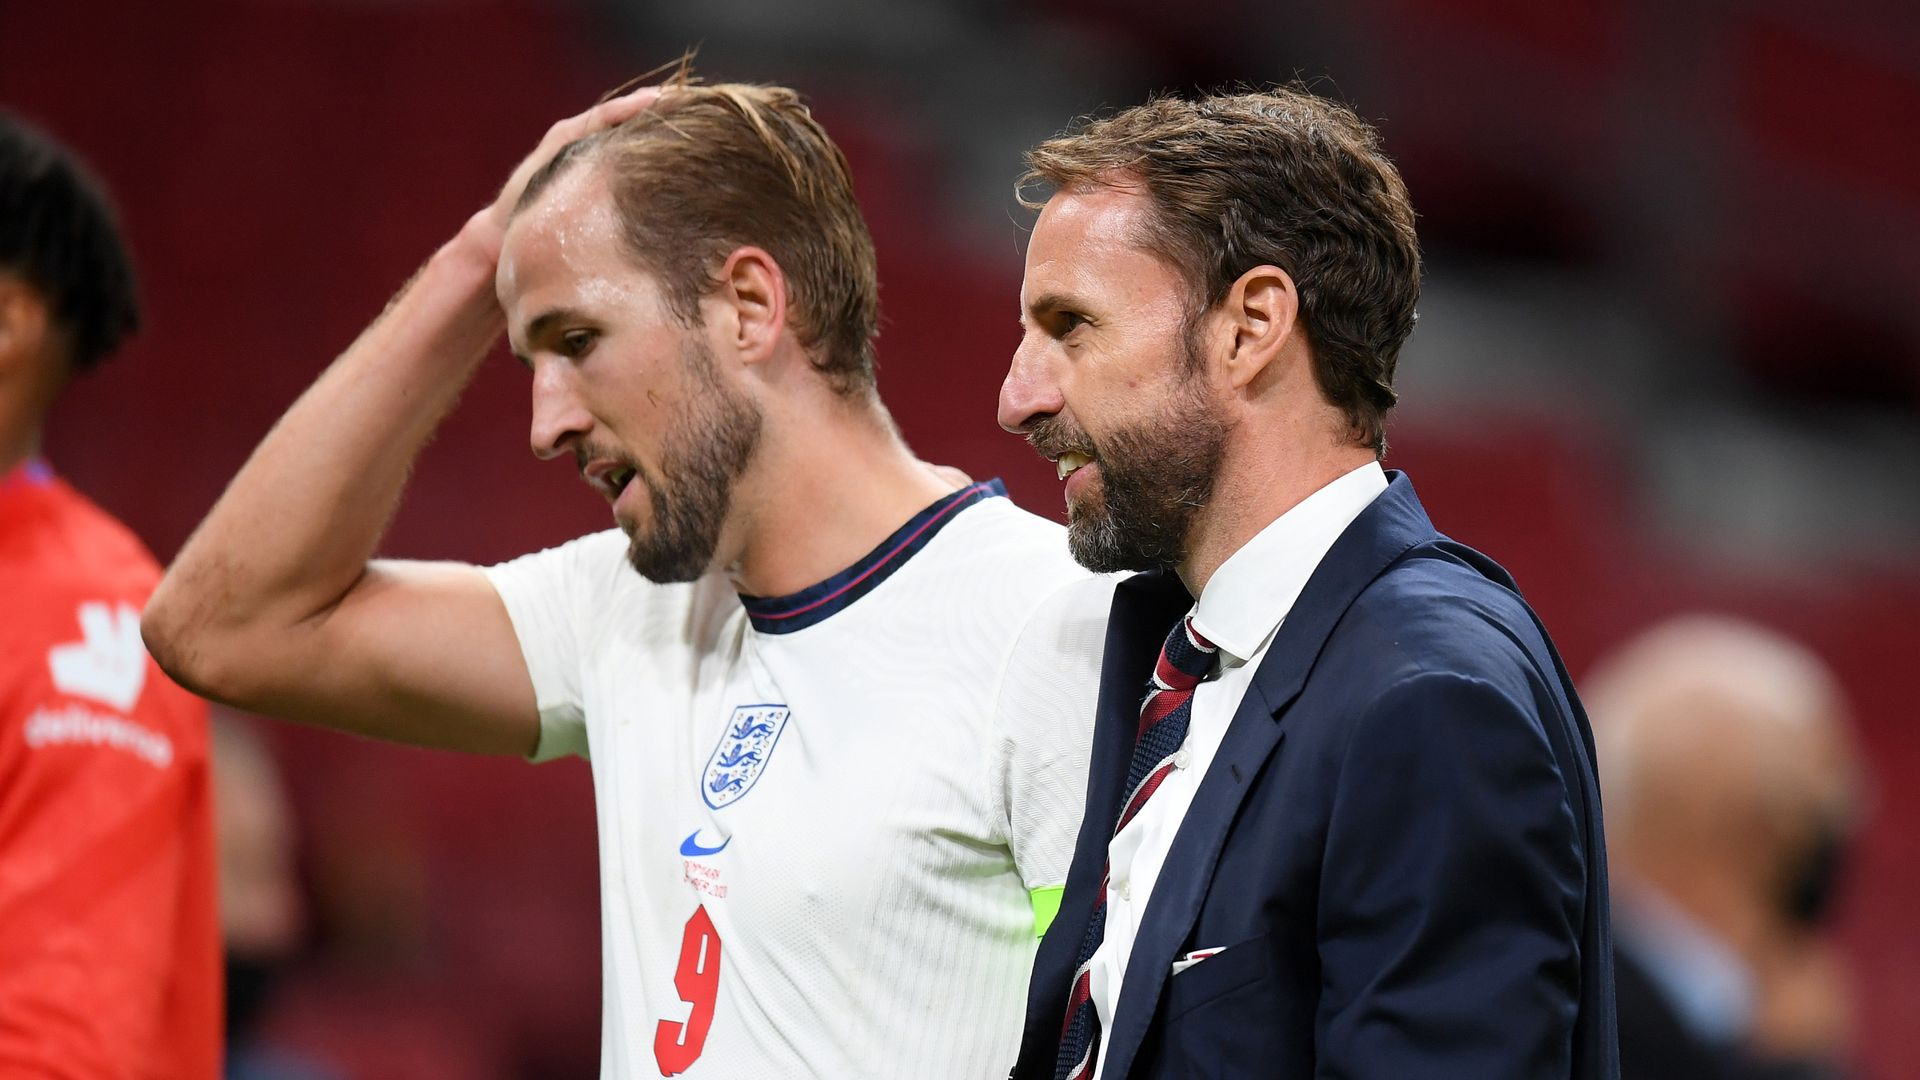 Southgate: Kane 100 per cent fit, we don't risk players